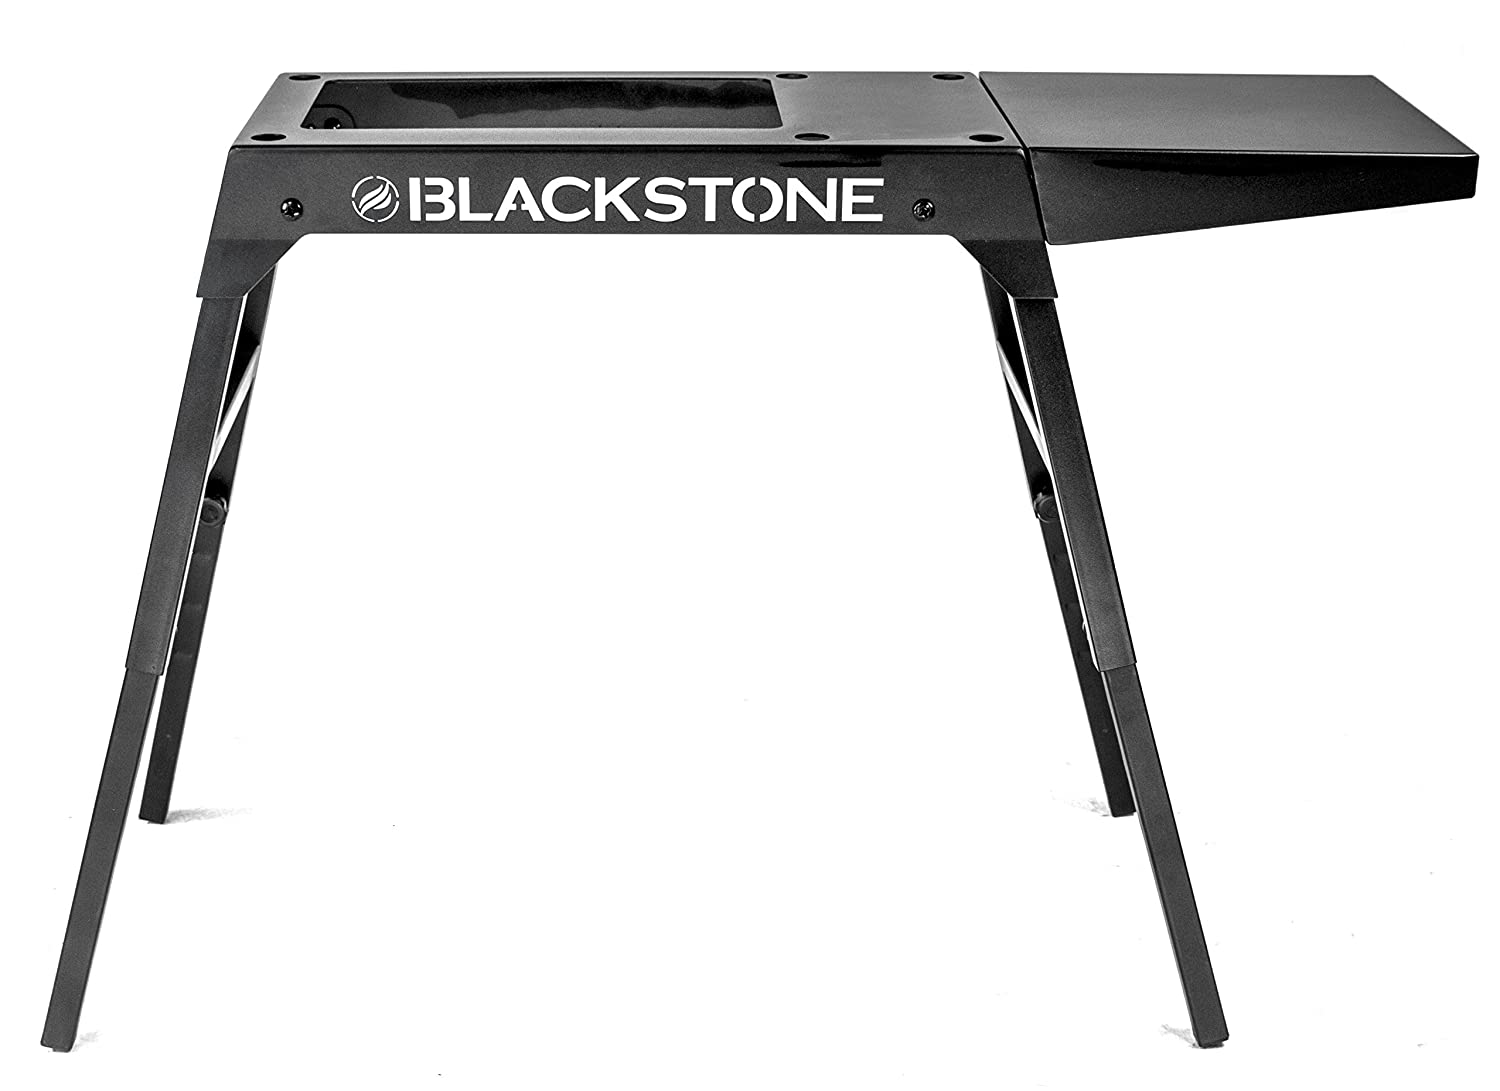 Blackstone Signature Griddle Accessories - Custom Designed for Blackstone 17 inch/22 inch Tabletop Grill - Portable Griddle Table, Legs and Shelf - Adjustable Legs - Camping Table - Black